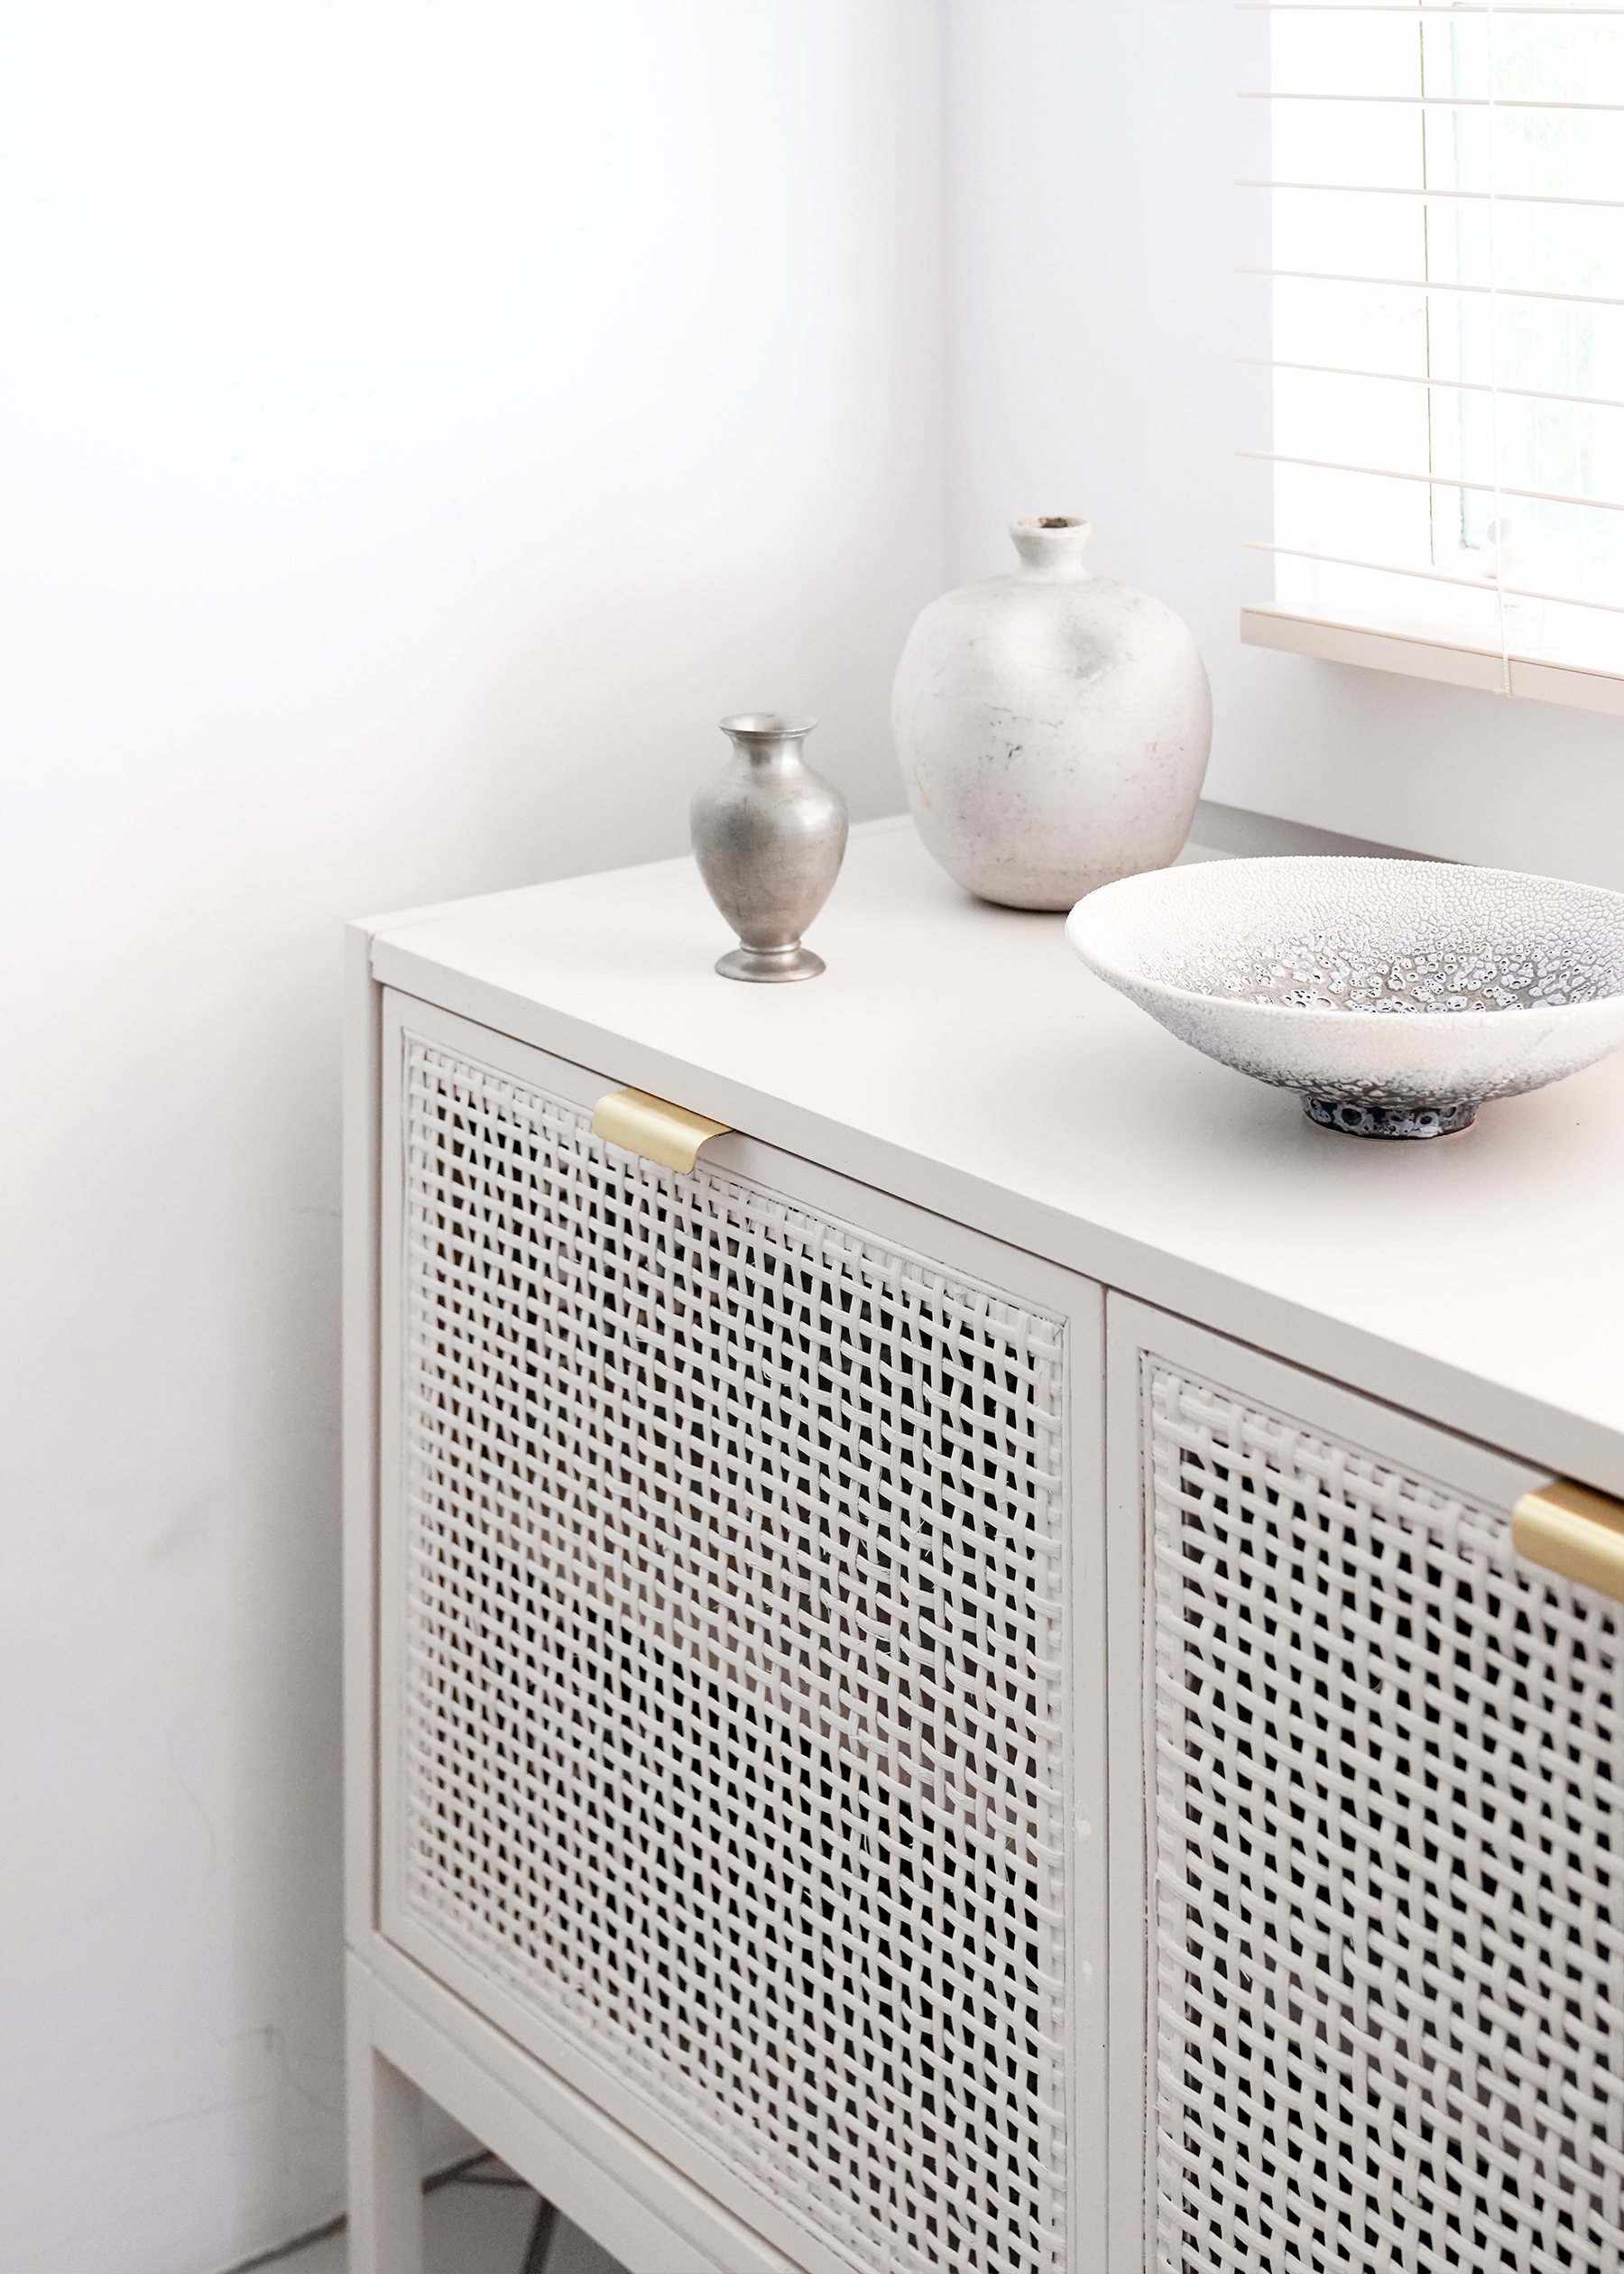 Our Diy Rattan Cabinet Kitchen Storage How To!   Anne Sage In Strokes And Waves Credenzas (View 24 of 30)